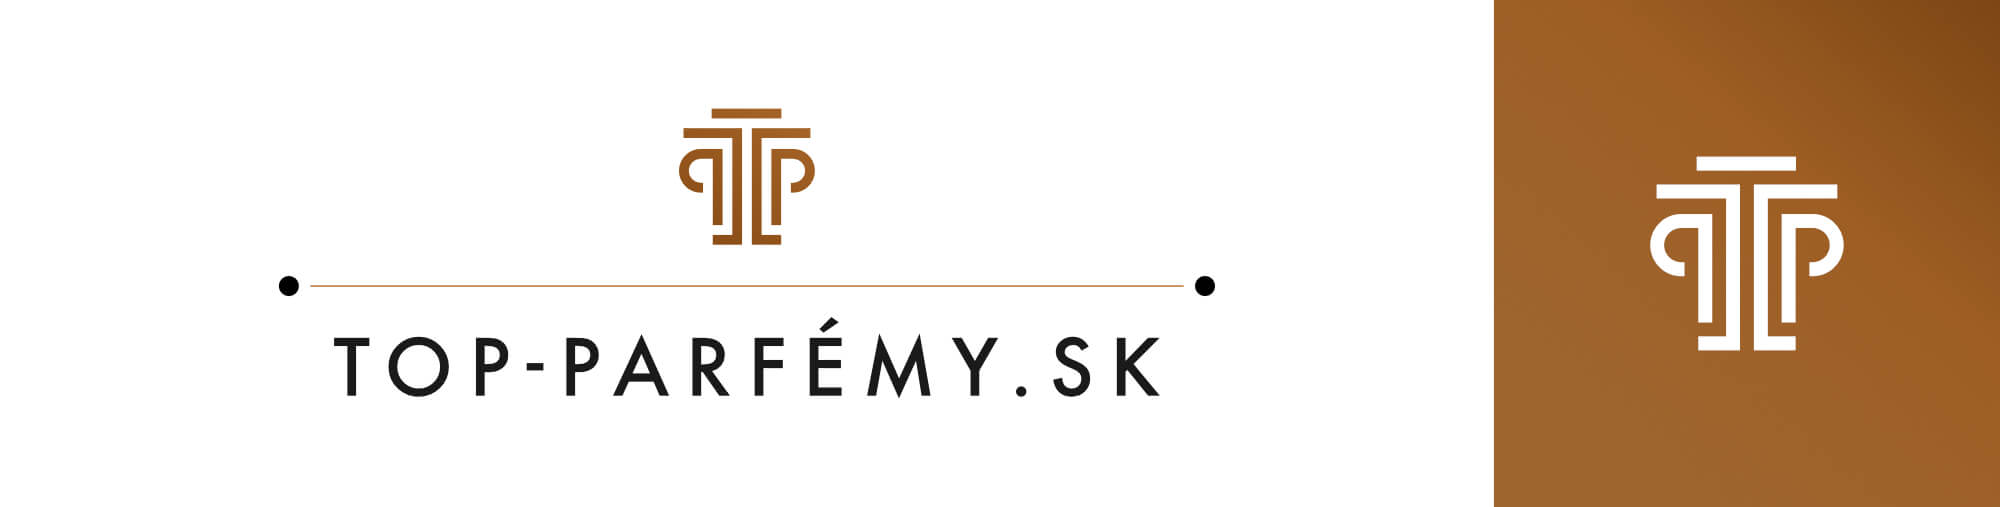 top-parfemy.sk logo case study by michael maleek djibril